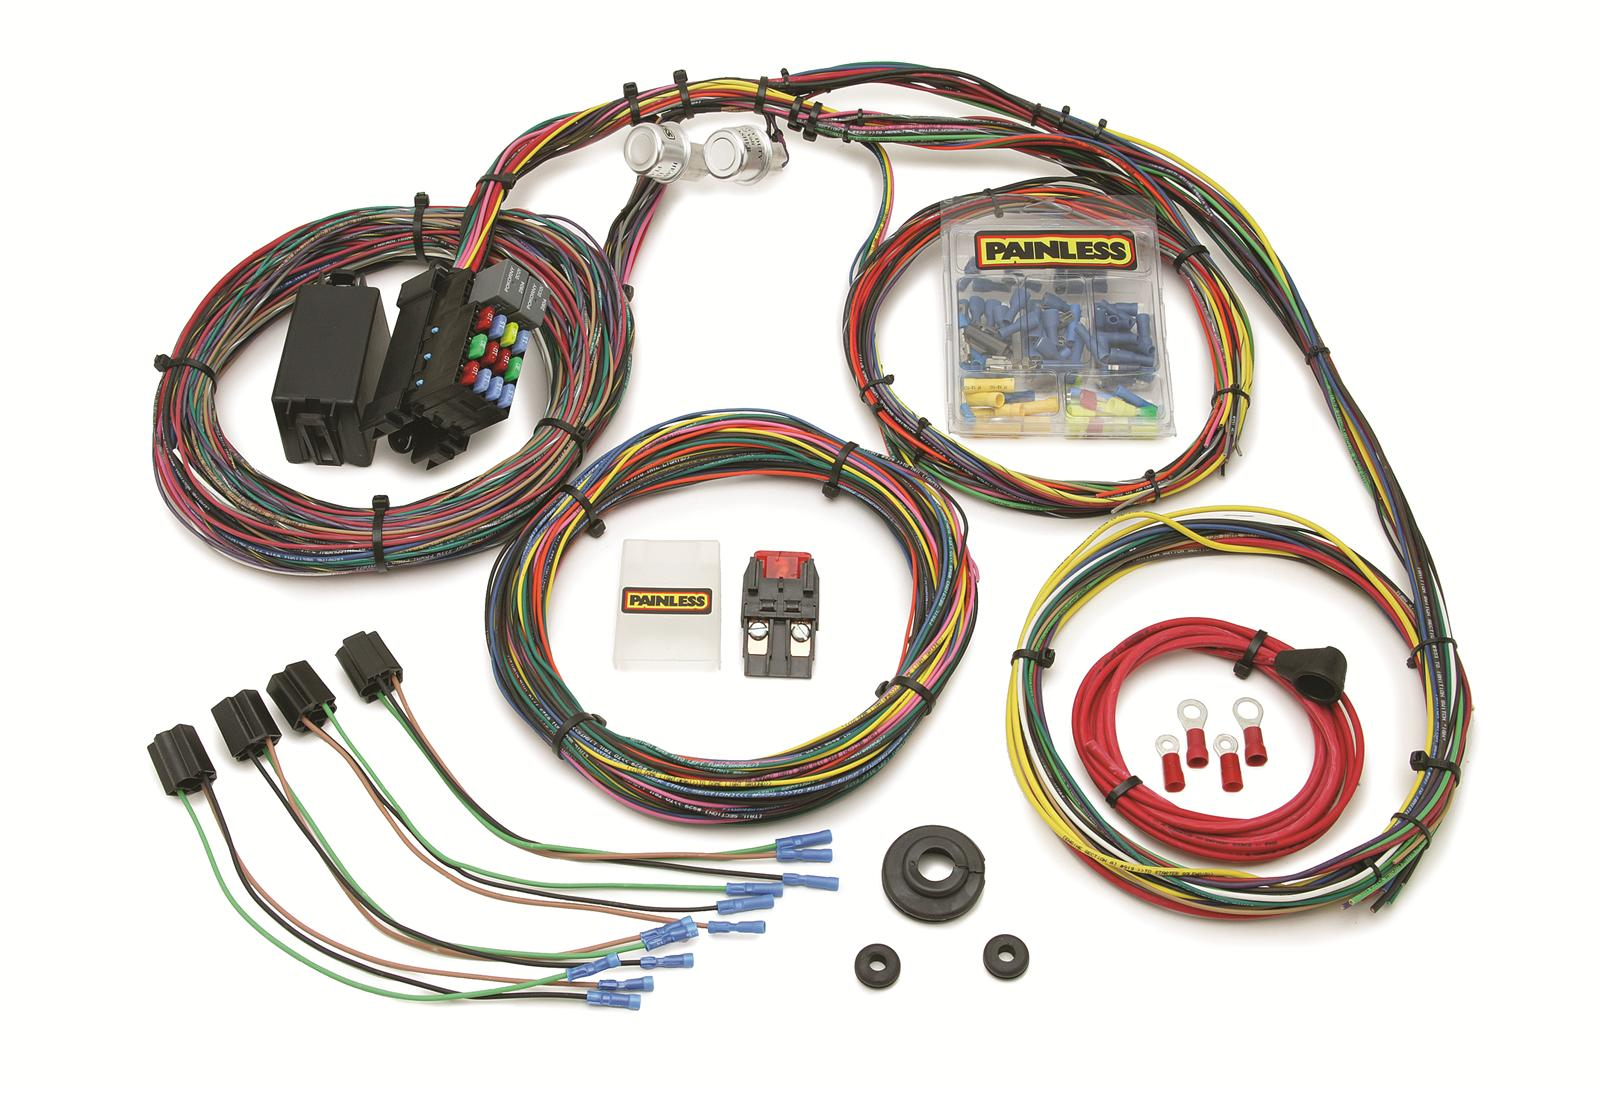 Painless Performance 21-Circuit Mopar Color Coded Universal Wiring  Harnesses 10127 - Free Shipping on Orders Over $49 at Summit Racing